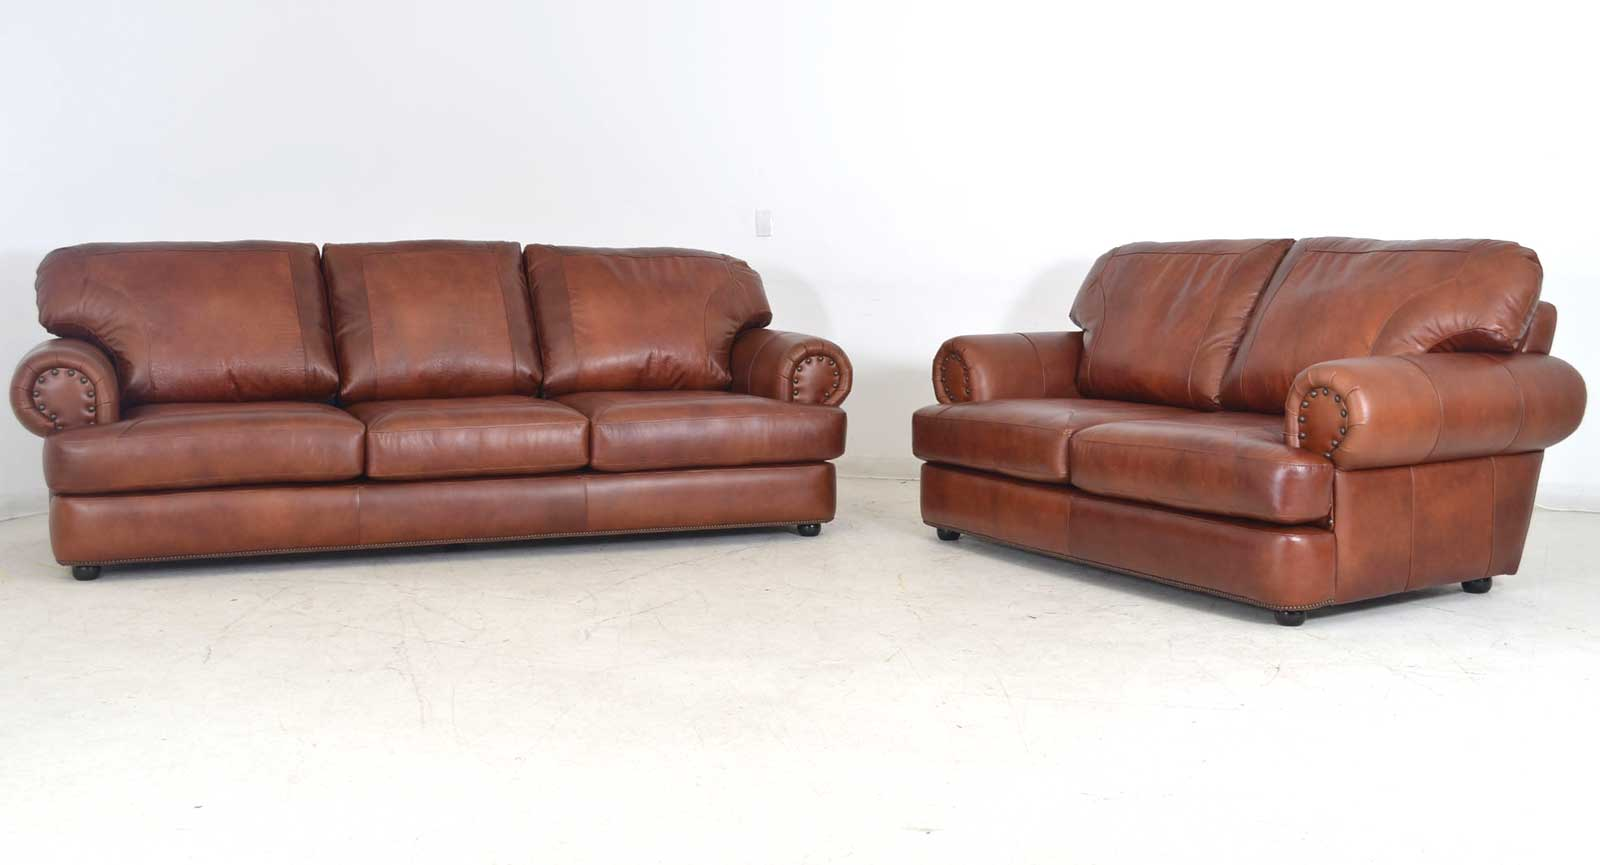 Three Seat Sofa Loveseat Two Leathers